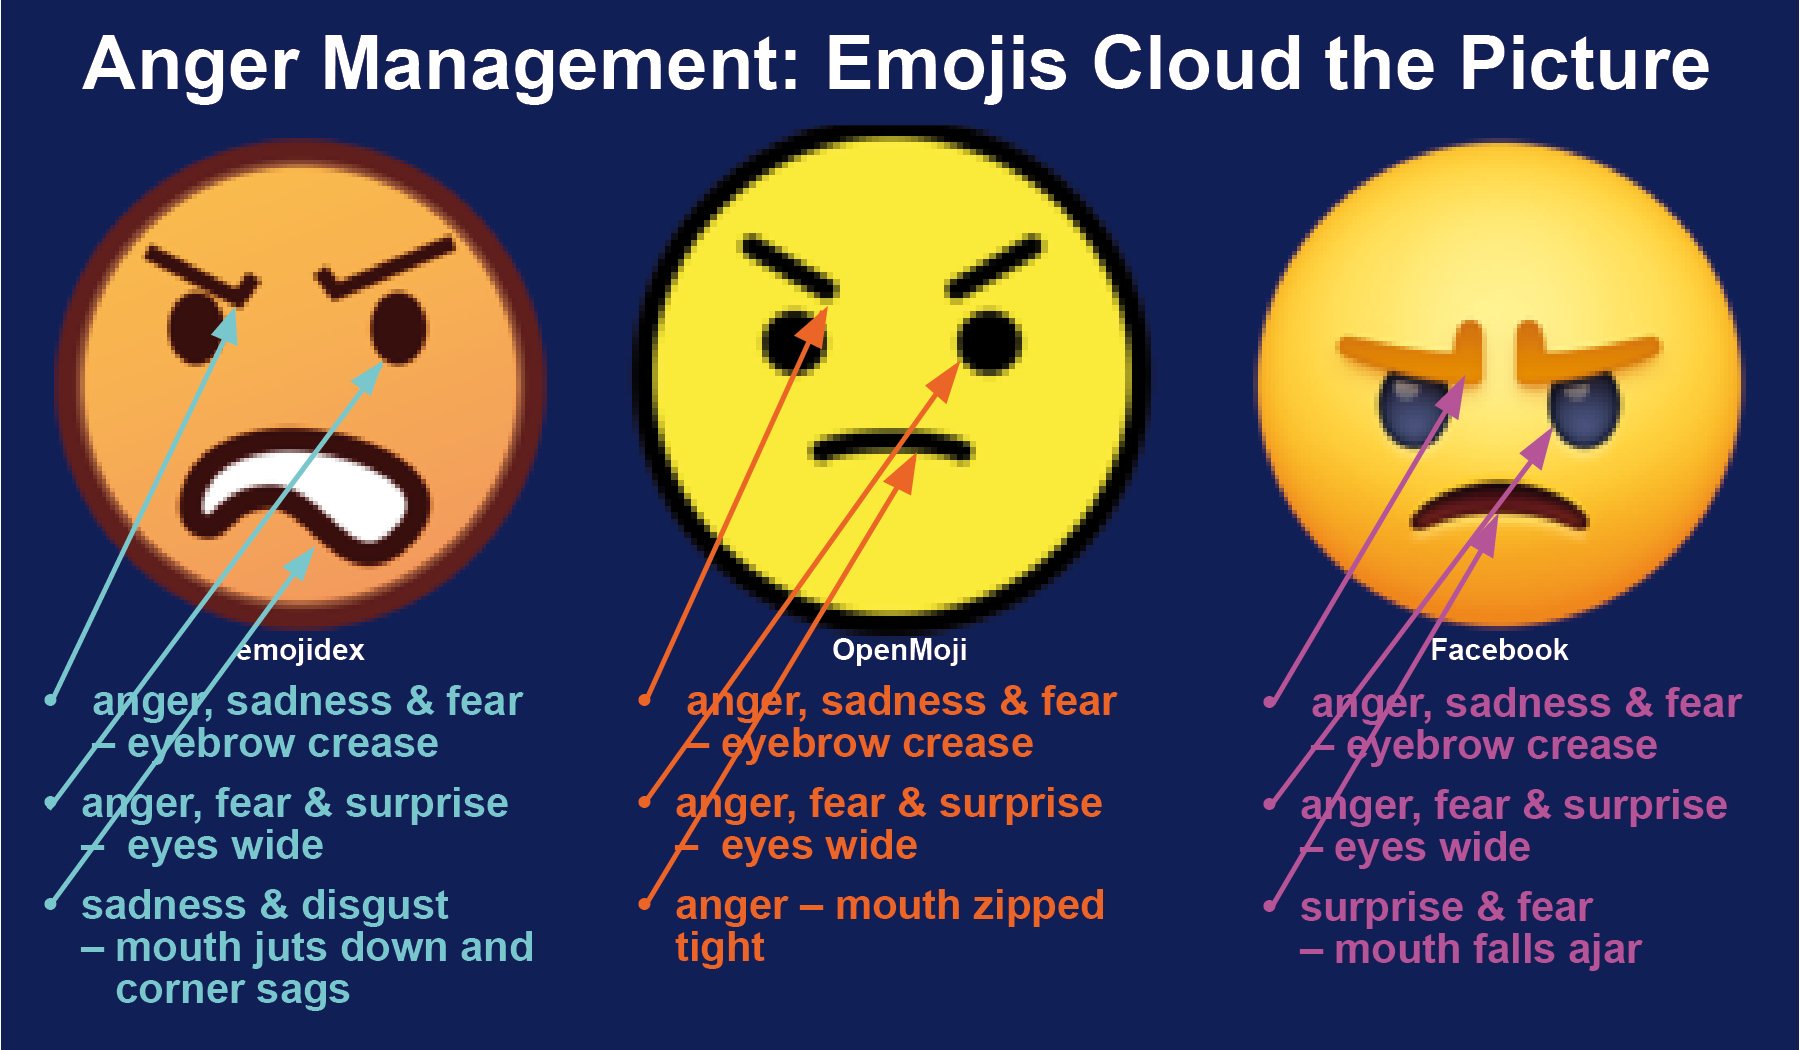 Anger Management: Emojis Cloud the Picture | Faces of the Week